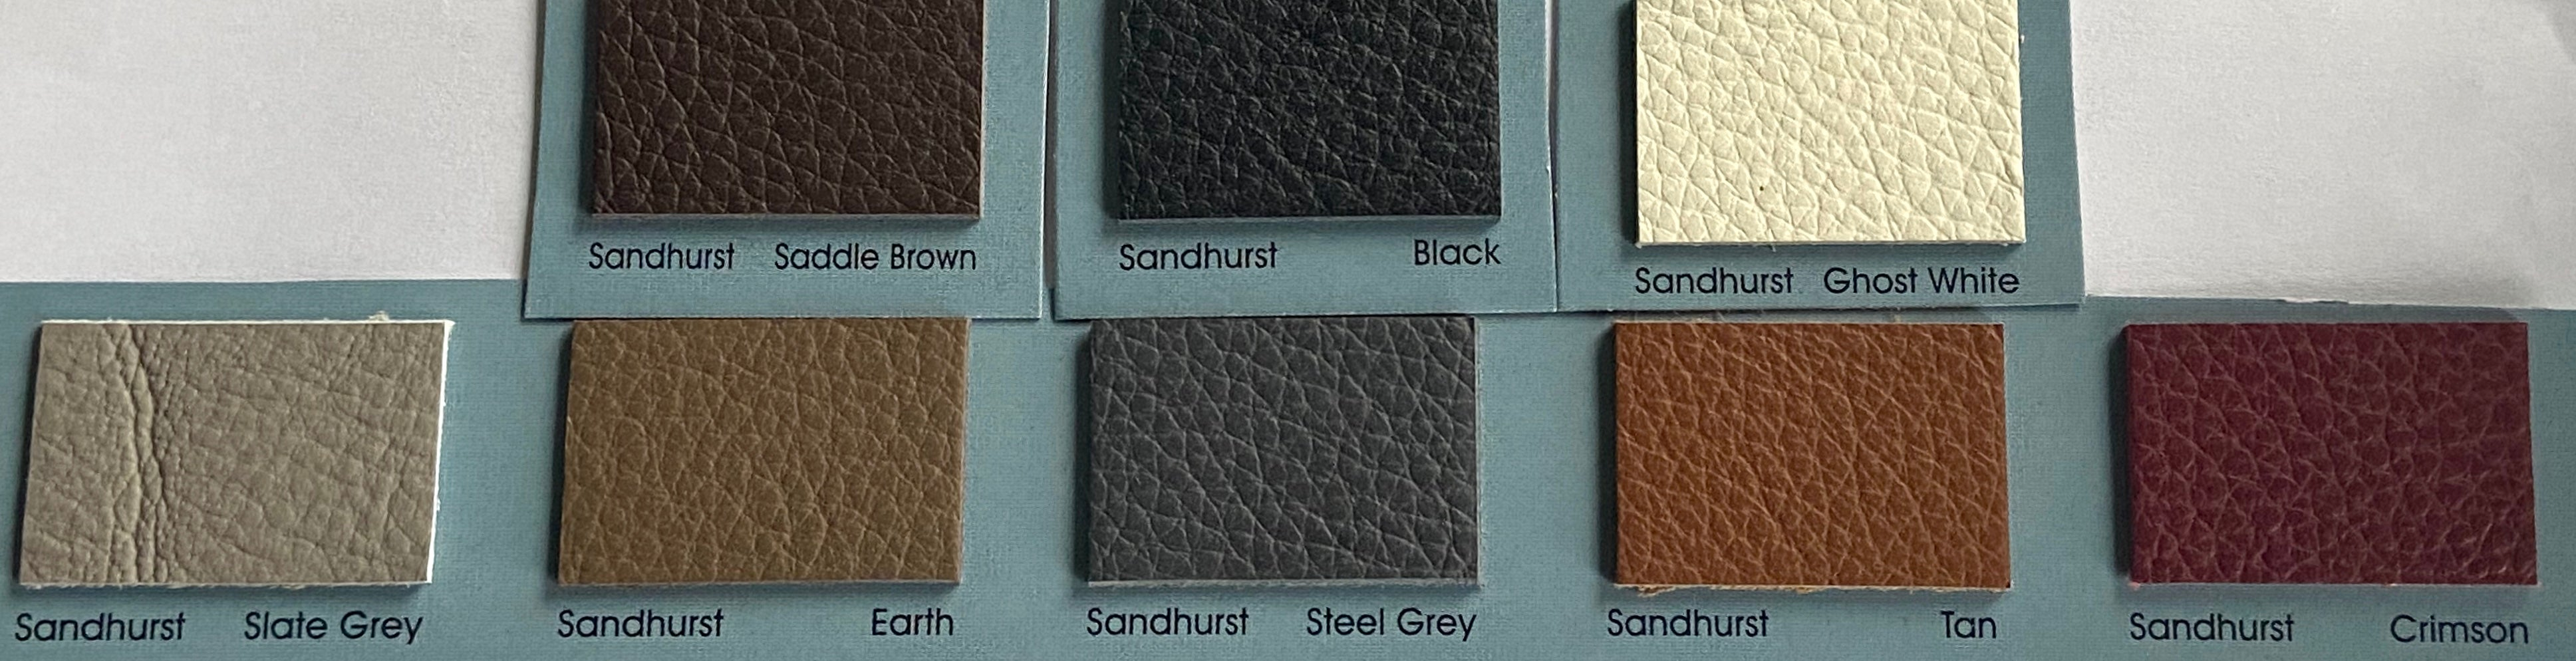 Sandhurst Steel Grey Italian Leather Cow Hide : (1.3-1.5mm) This Hide Is Perfect for Leather Upholstery , Leather Crafts, Leather Bags , Leather Accessories.